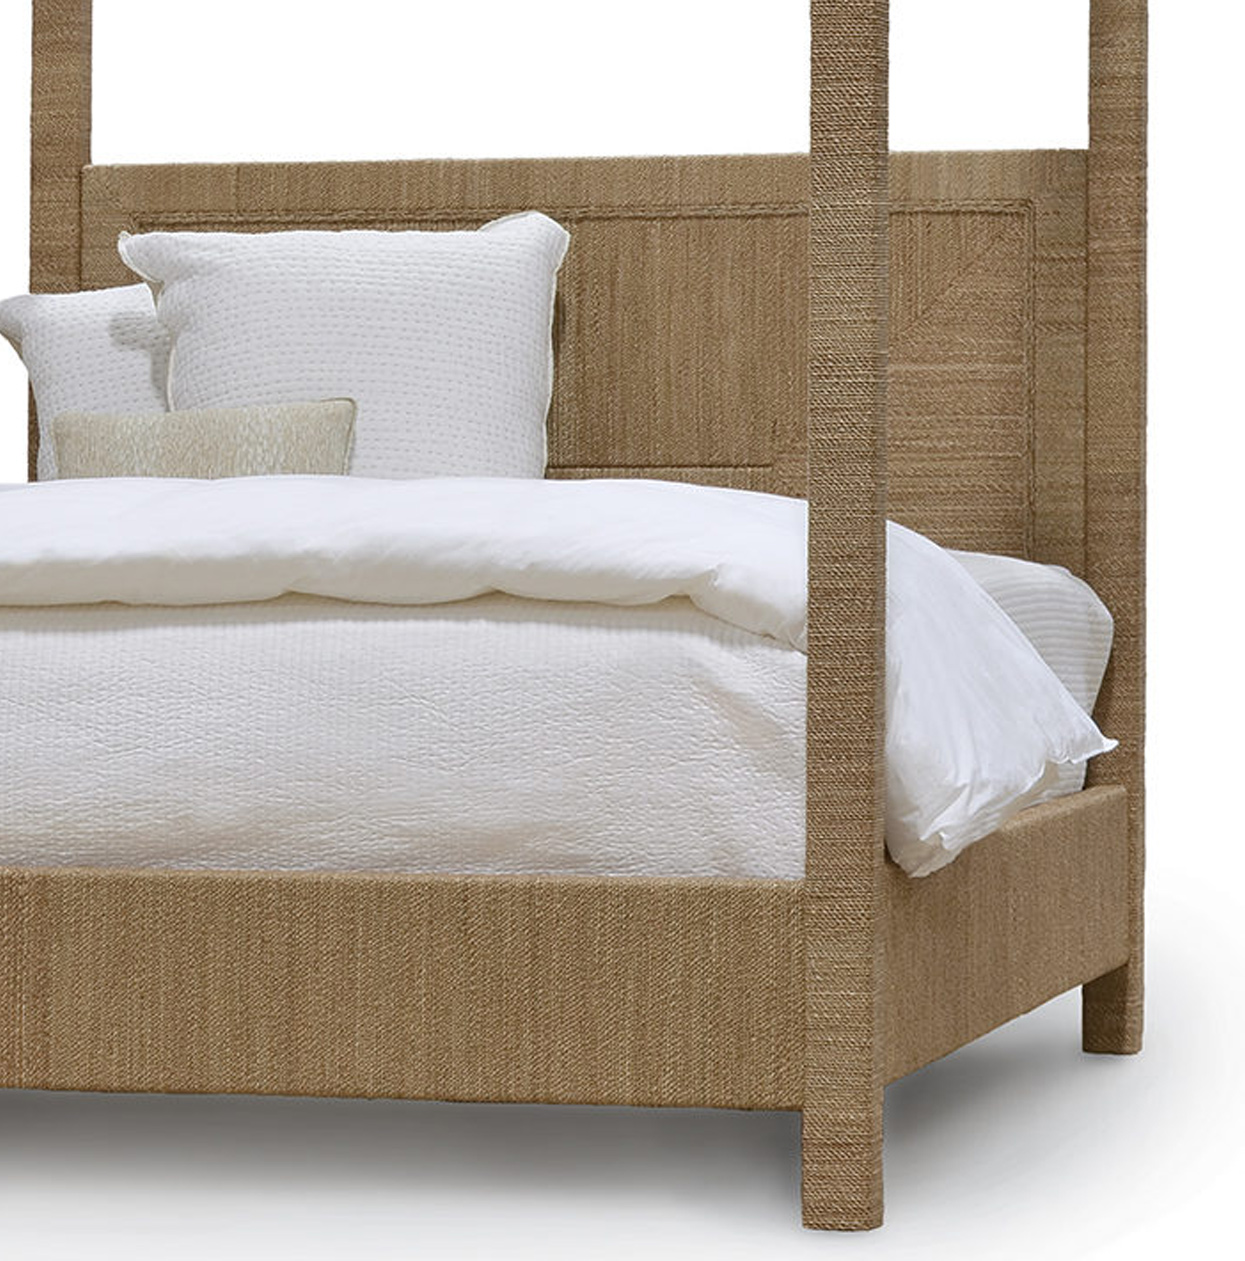 Woodside-Canopy-Bed-3